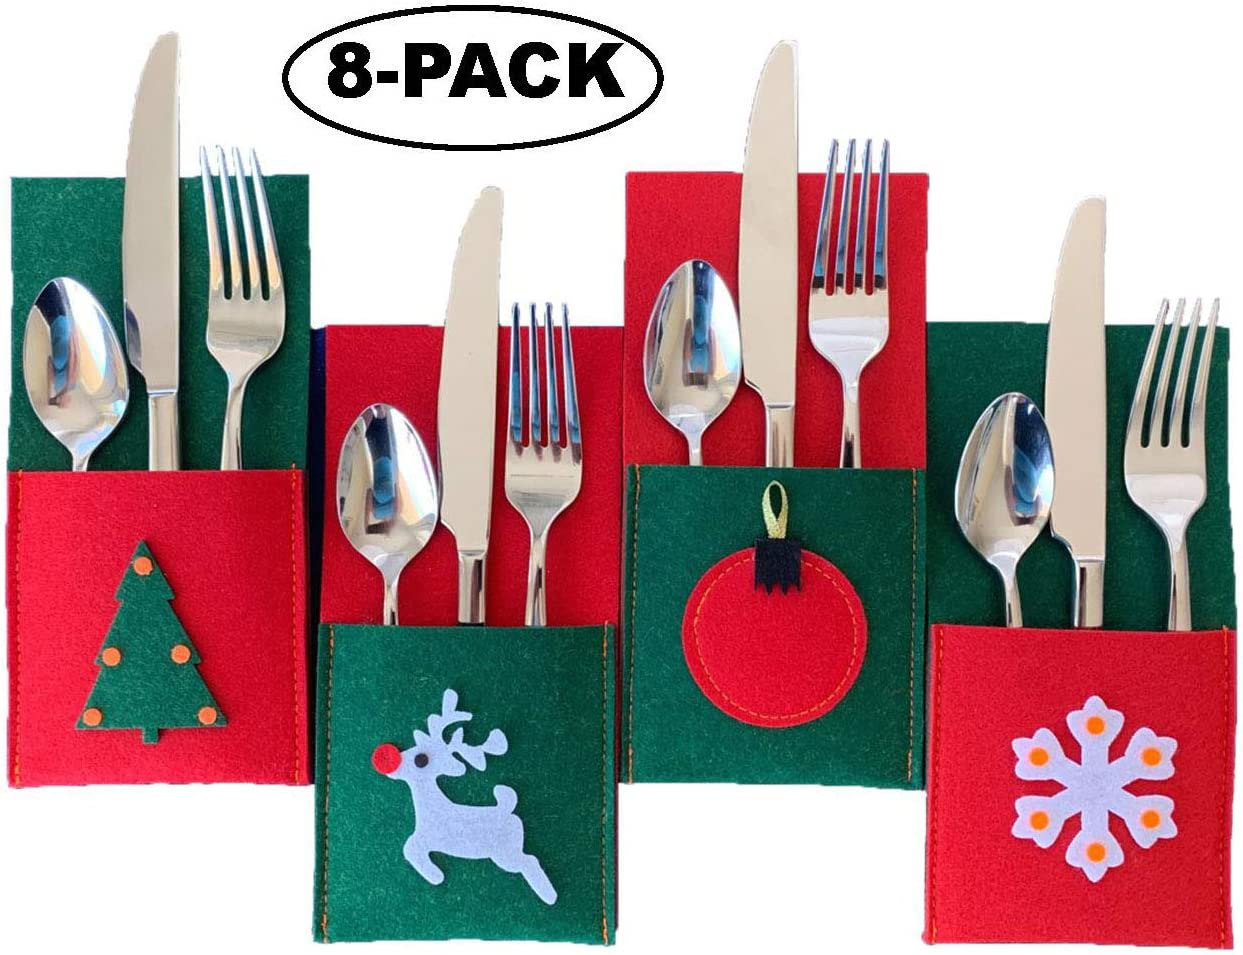 Christmas Silverware Holders for Festive Holiday Entertaining - 8 Pack of Sturdy Felt  Many Table Decoration Ideas  Use for Place Settings  Candy  Notes from Santa